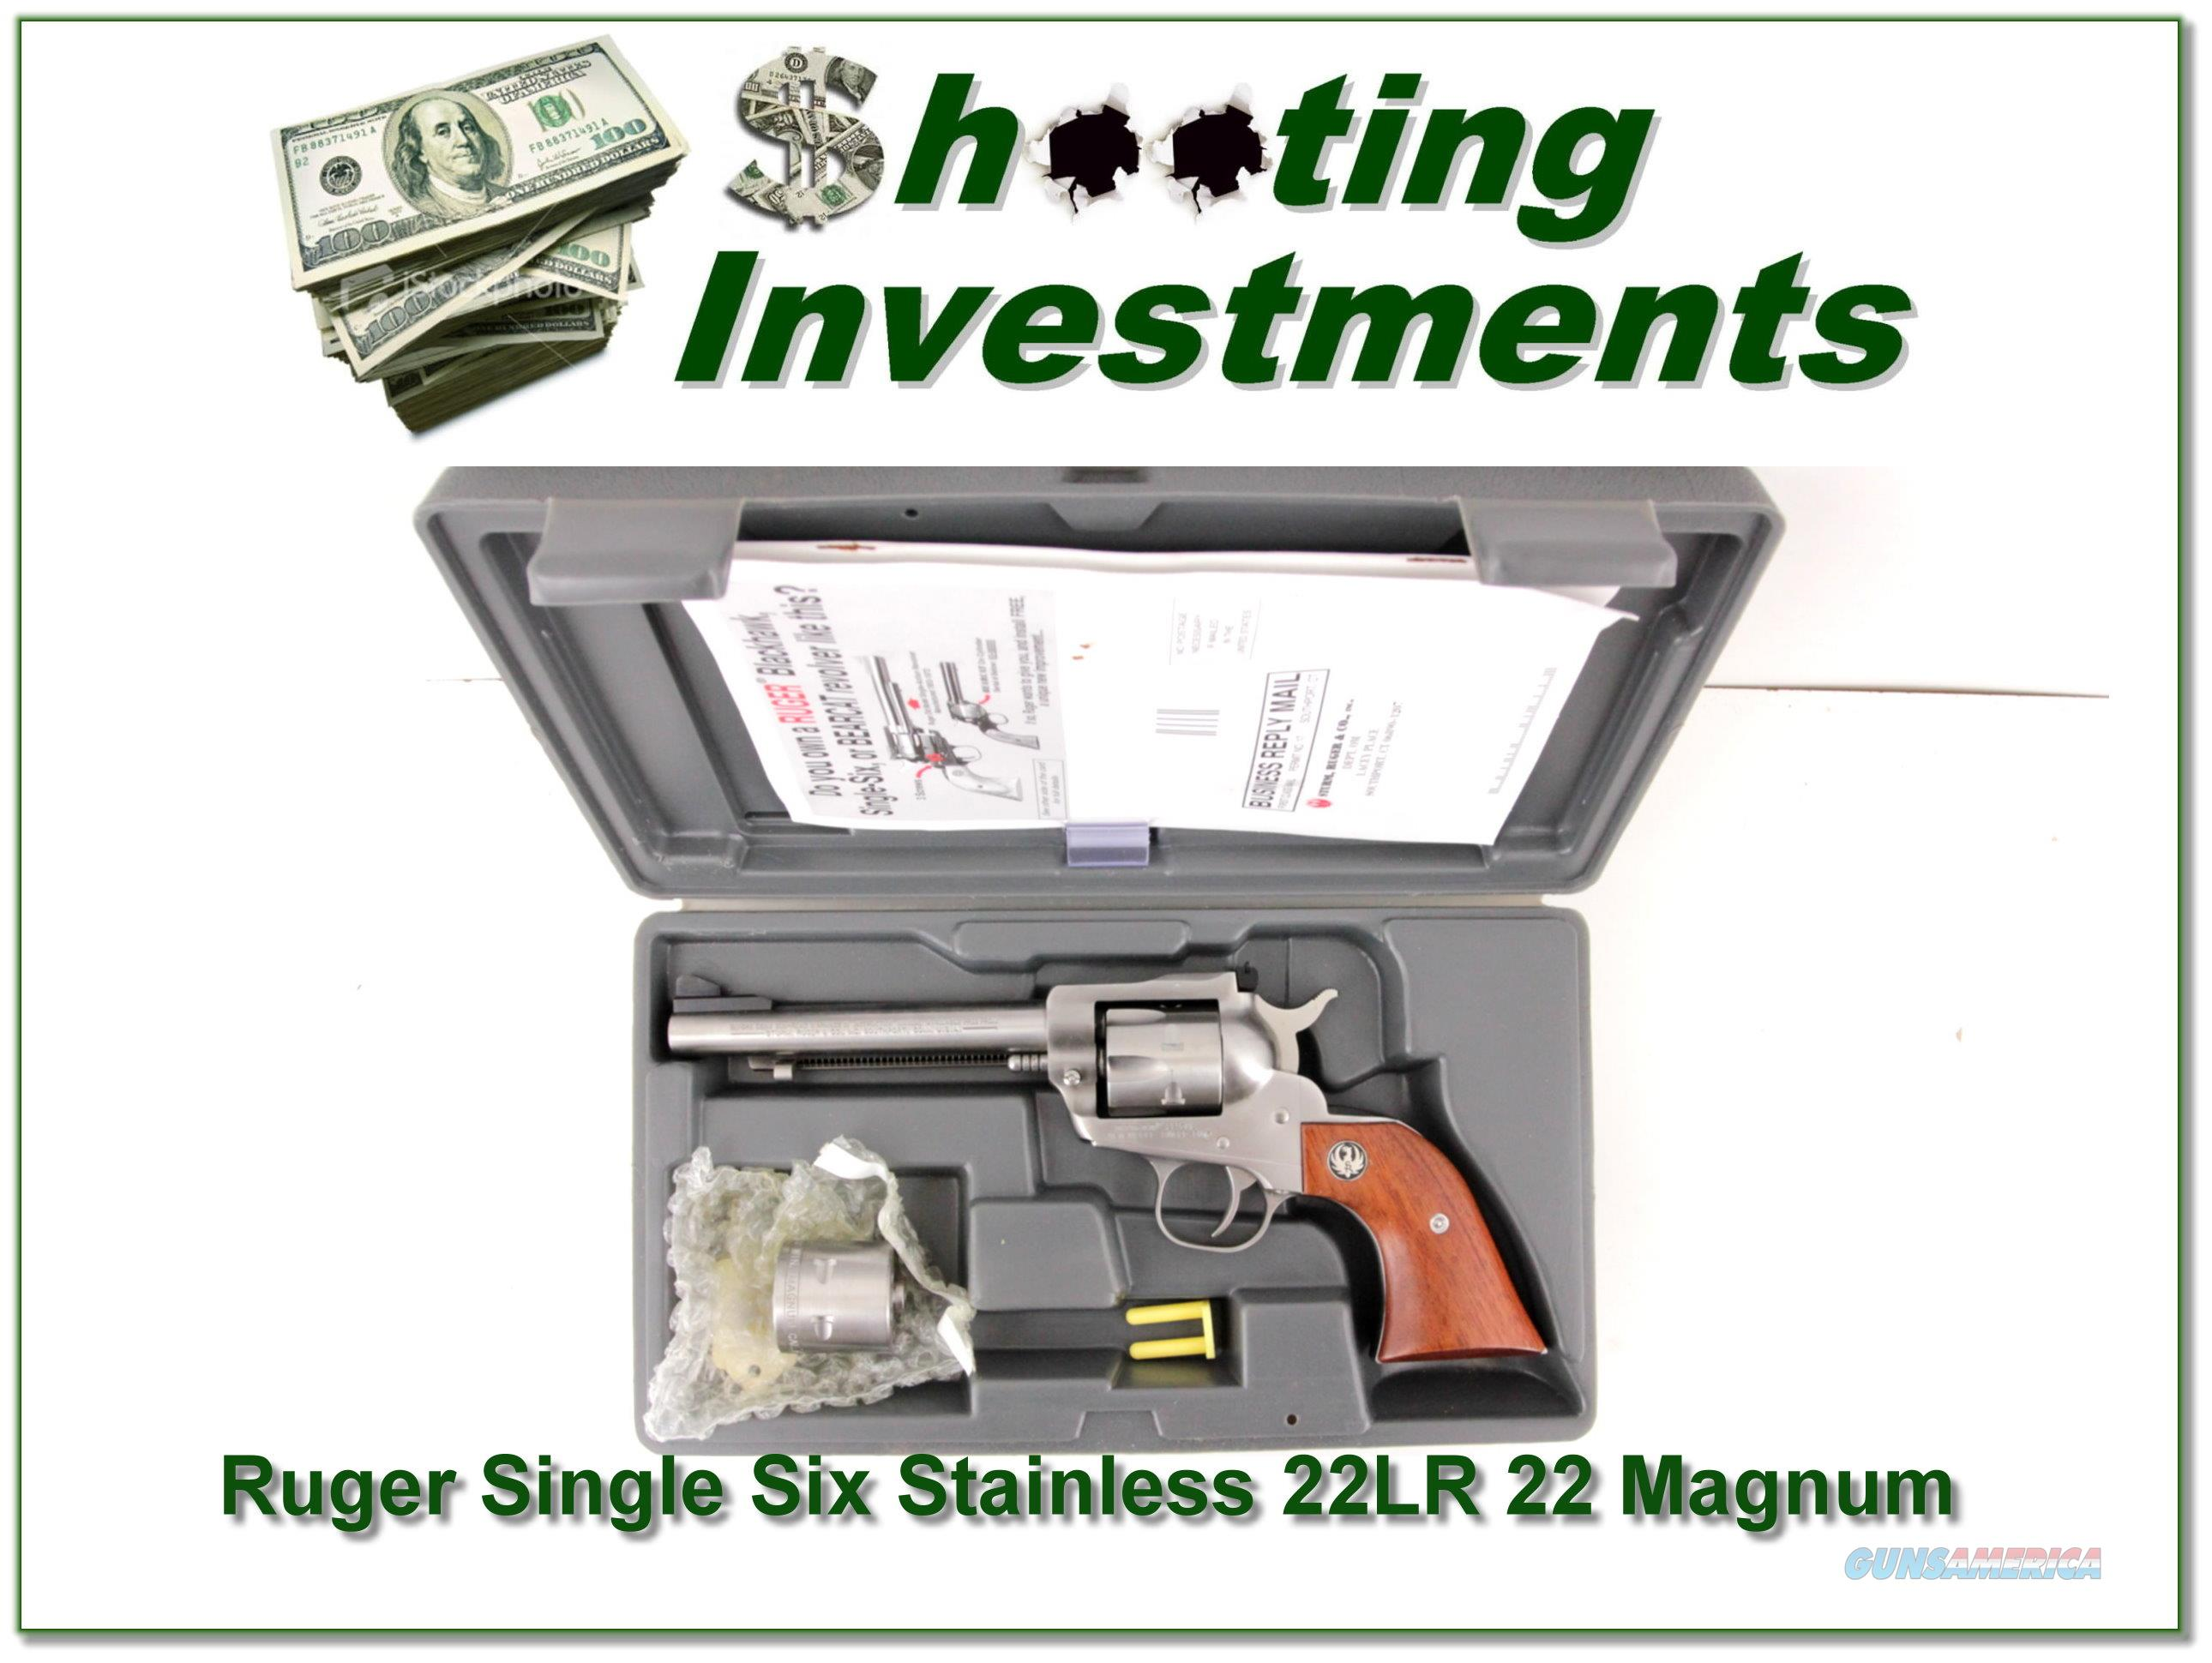 Magnum Insurance Near Me >> Ruger Single Six New Model Stainless 22 22Mag for sale